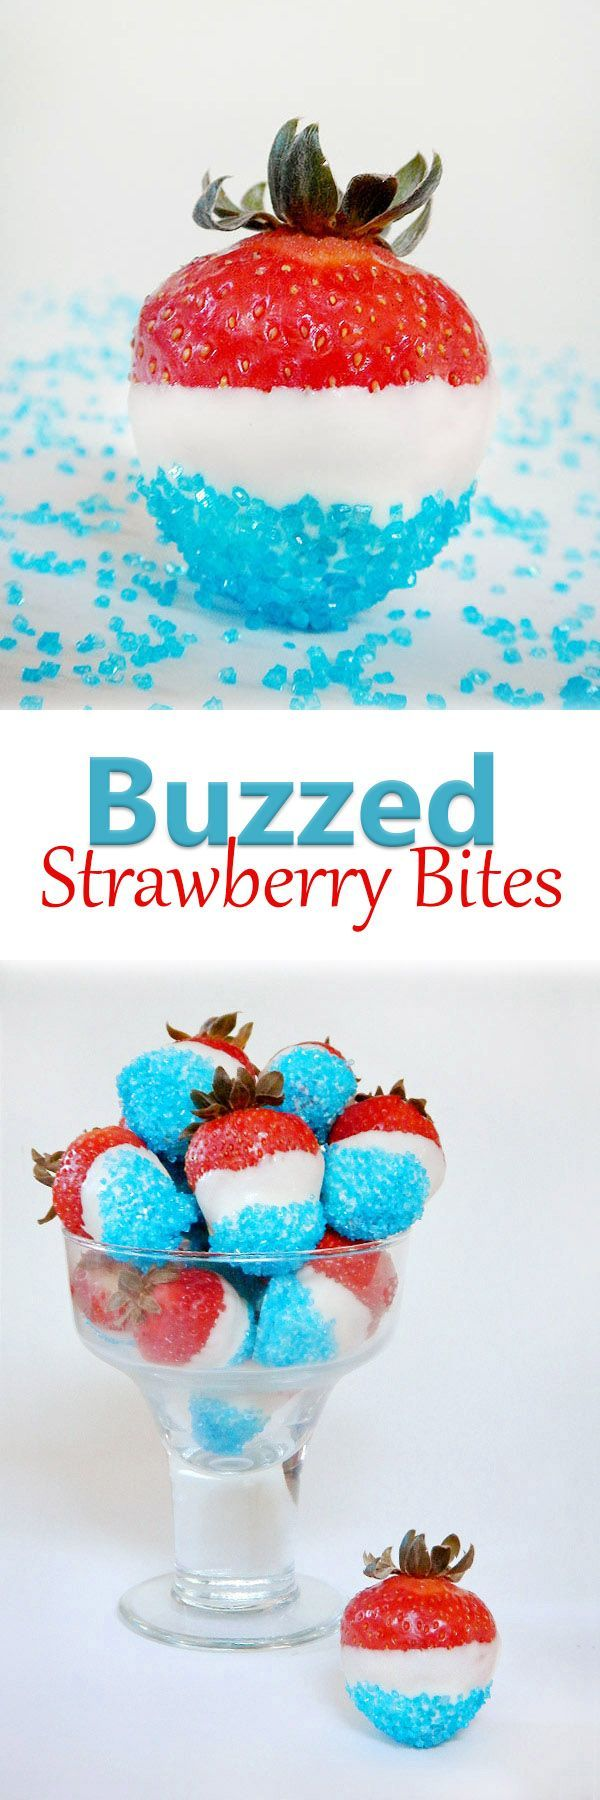 Buzzed Strawberry Bites Strawberries soaked in rum then covered in white chocolate and blue sprinkles. Per